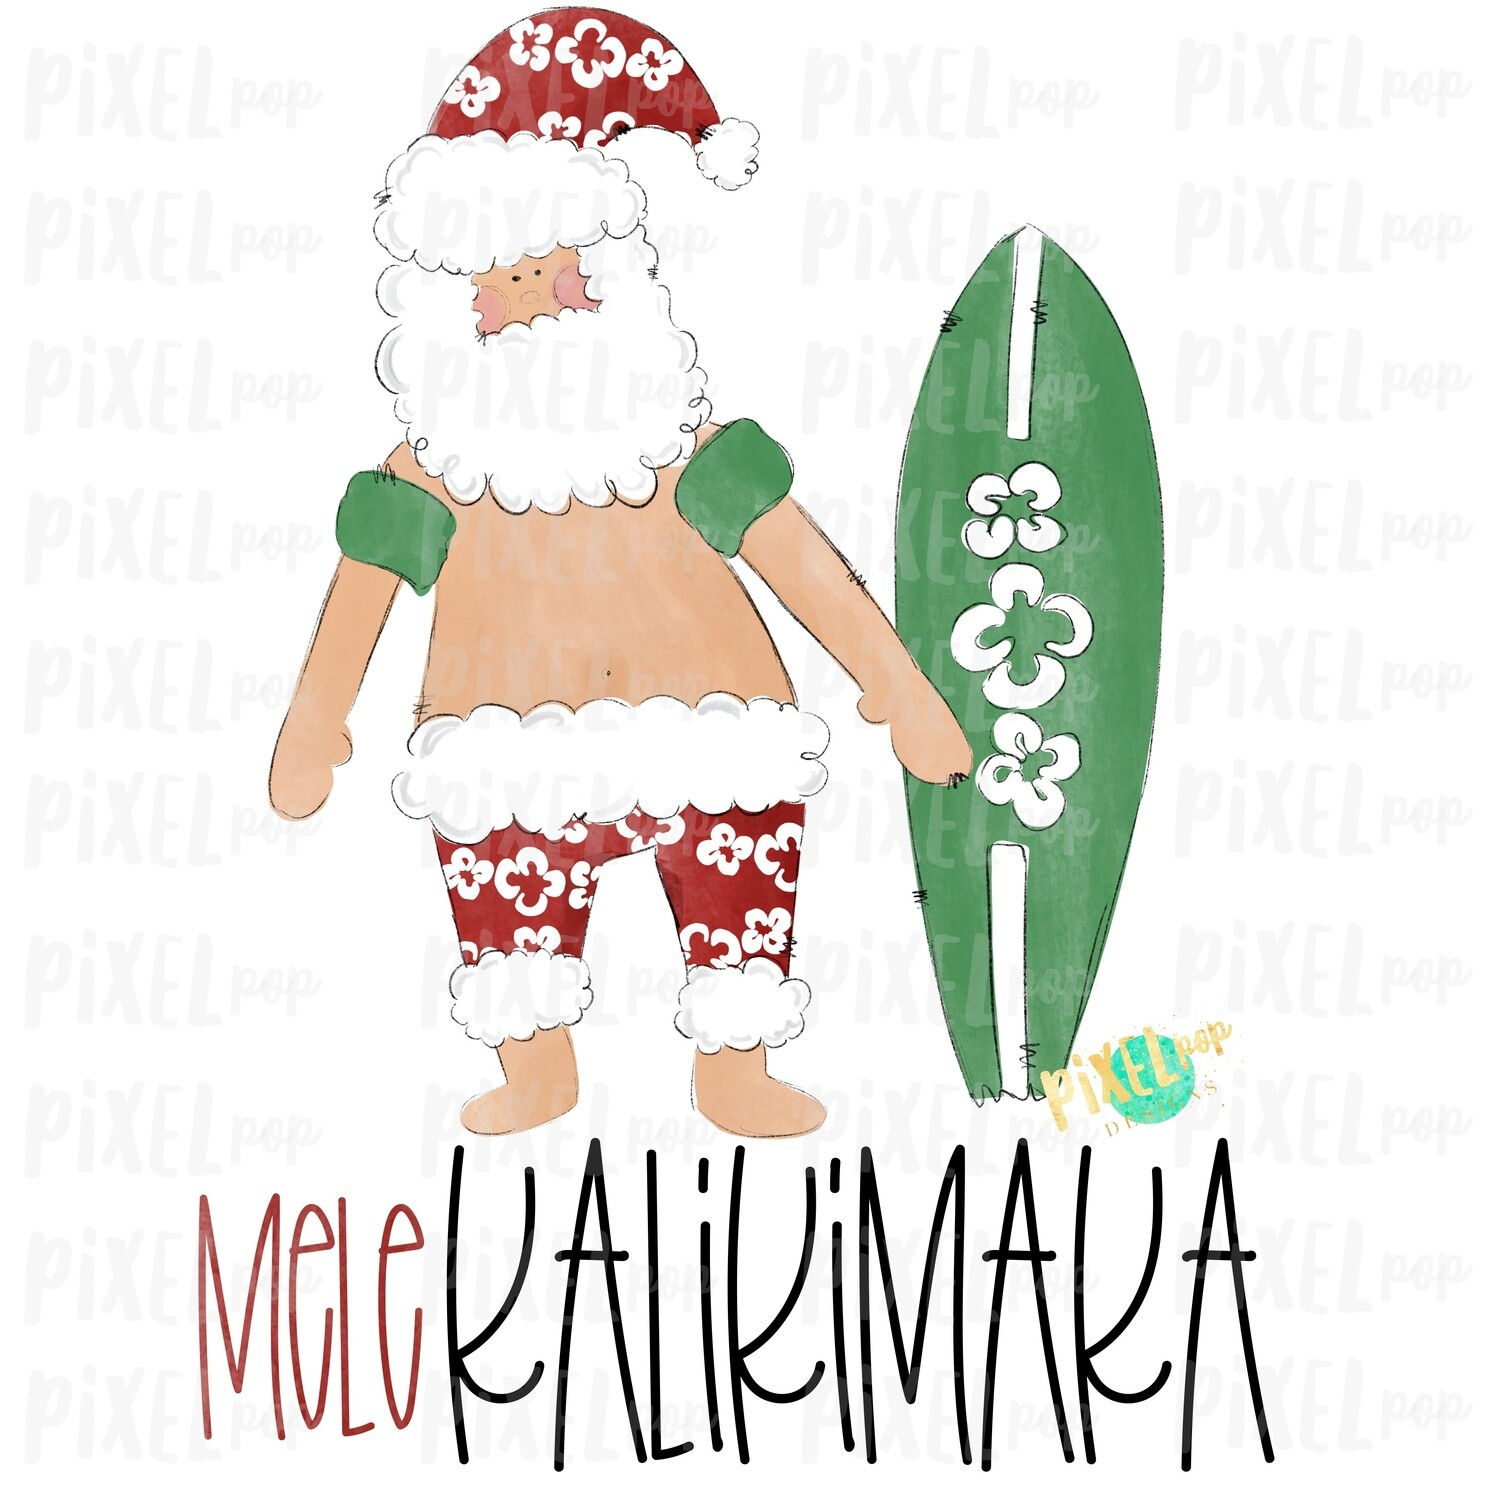 Mele Kalikimaka Santa Beach SublimationPNG | Watercolor Santa | Santa Claus | Art | Sublimation PNG | Digital Download | Printable Artwork